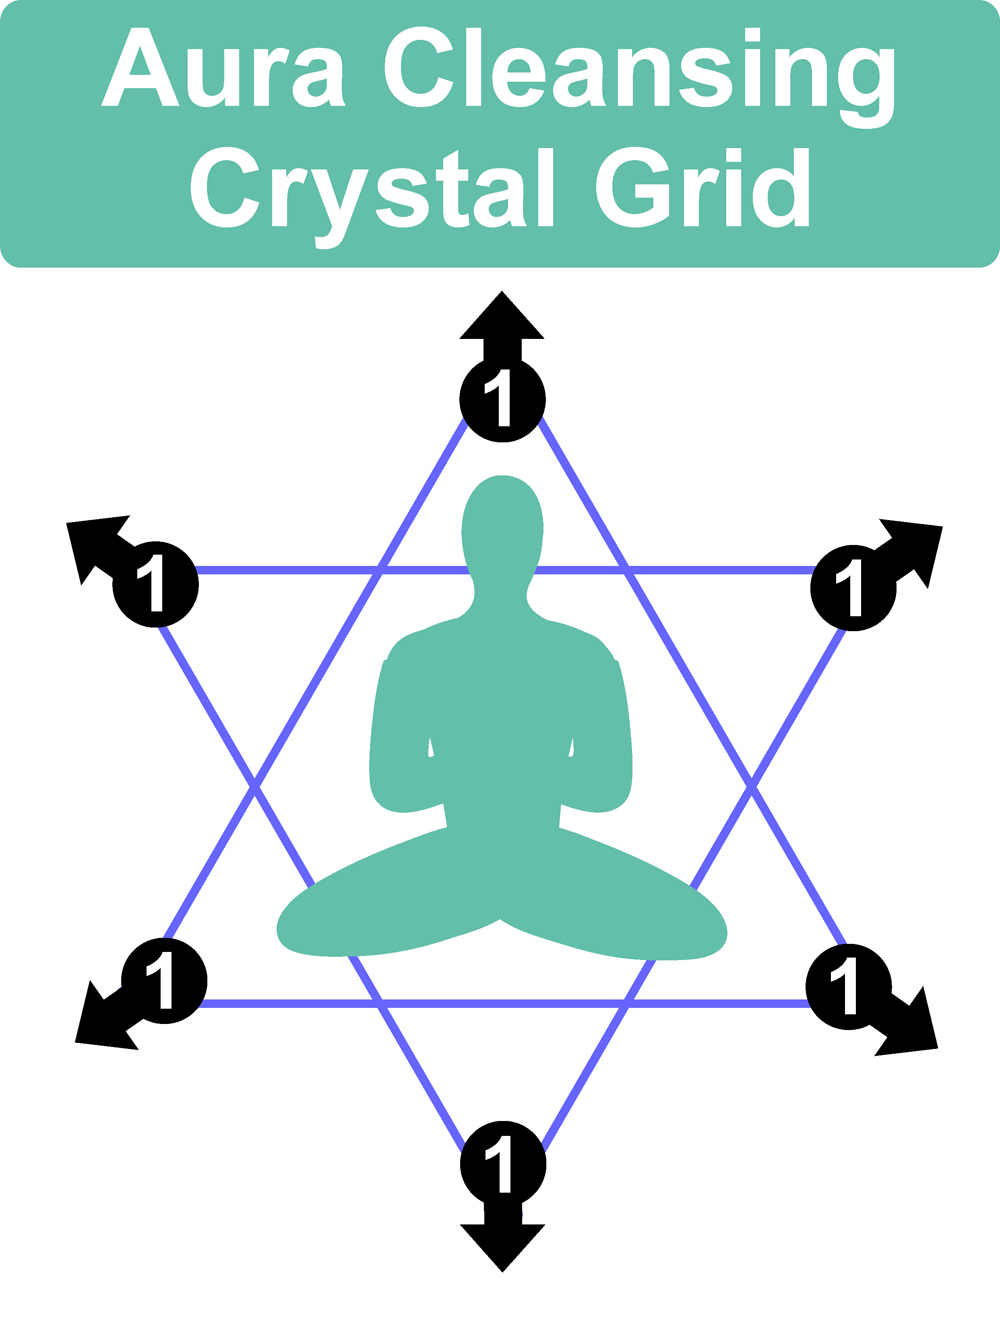 Aura Cleansing Crystal Grid Layout